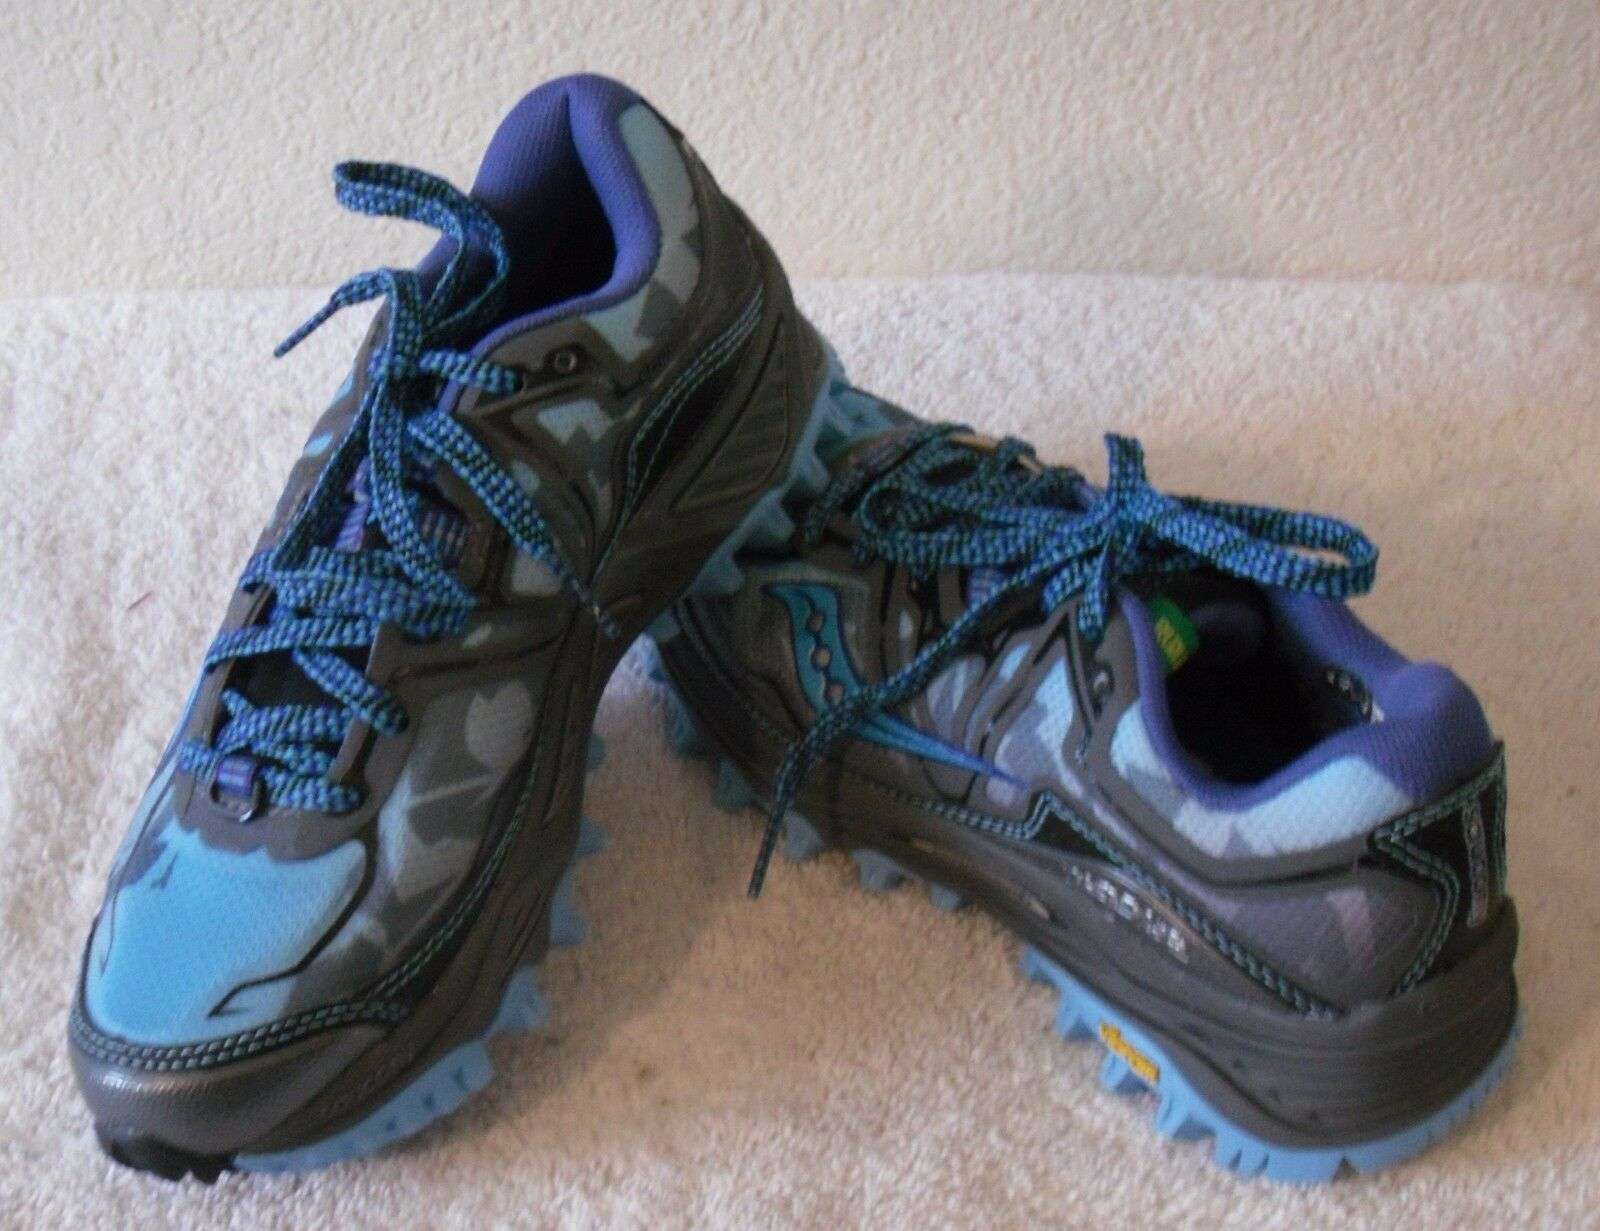 NEW Saucony Xodus 6 Womens Hiking Trail Running shoes 5.5 bluee Grey MSRP 120